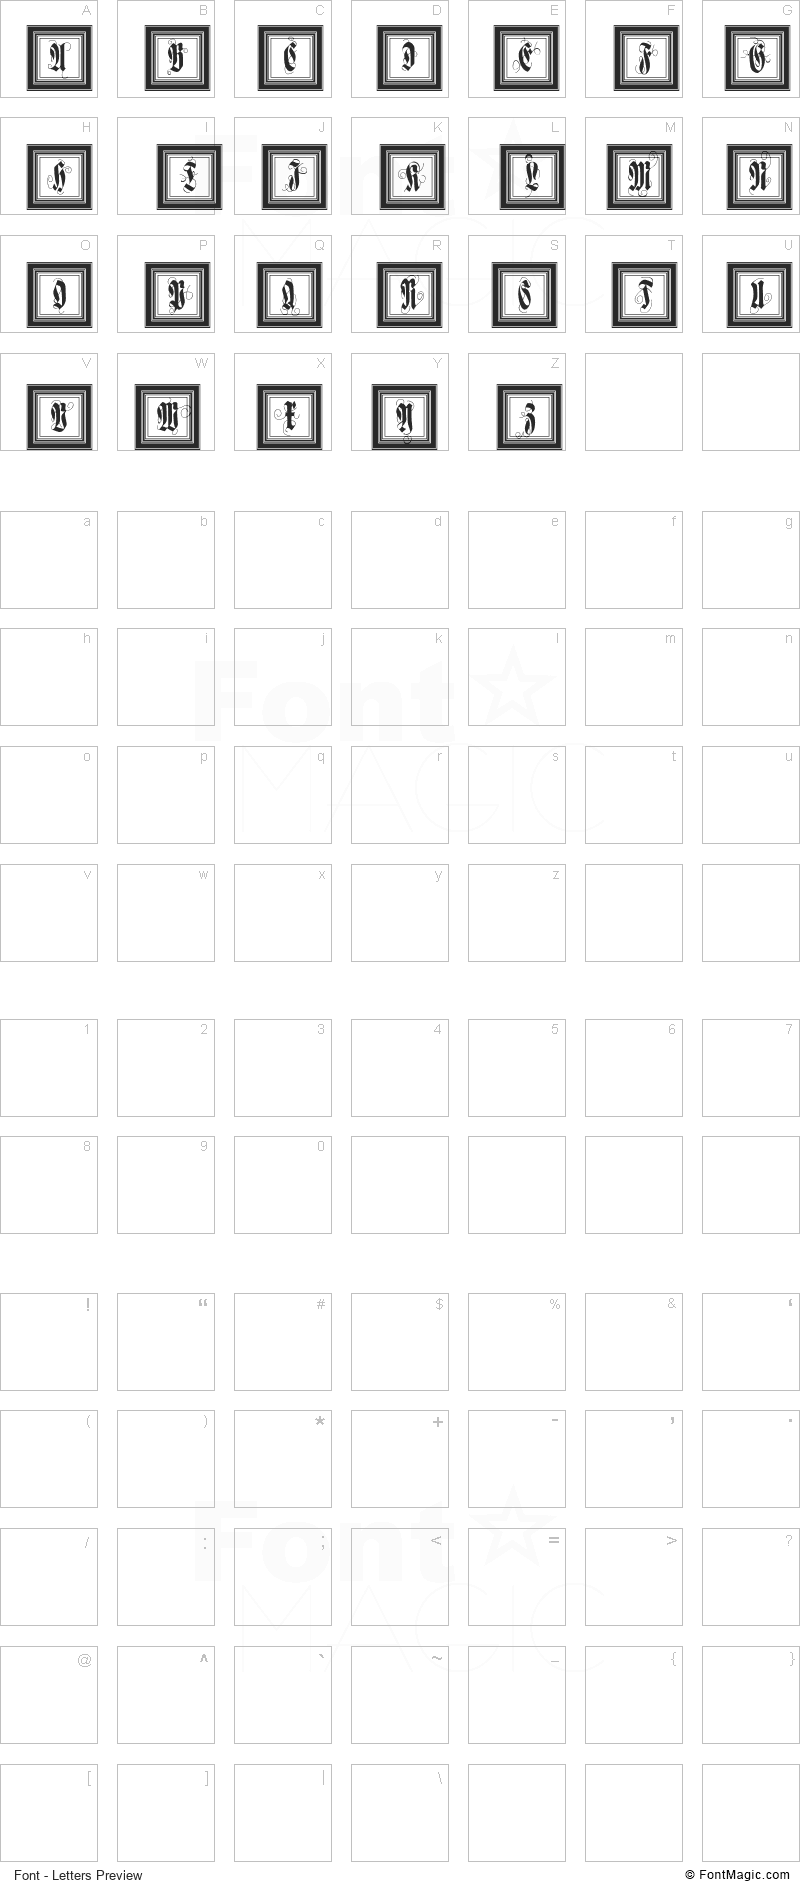 FramedFraxCaps Font - All Latters Preview Chart